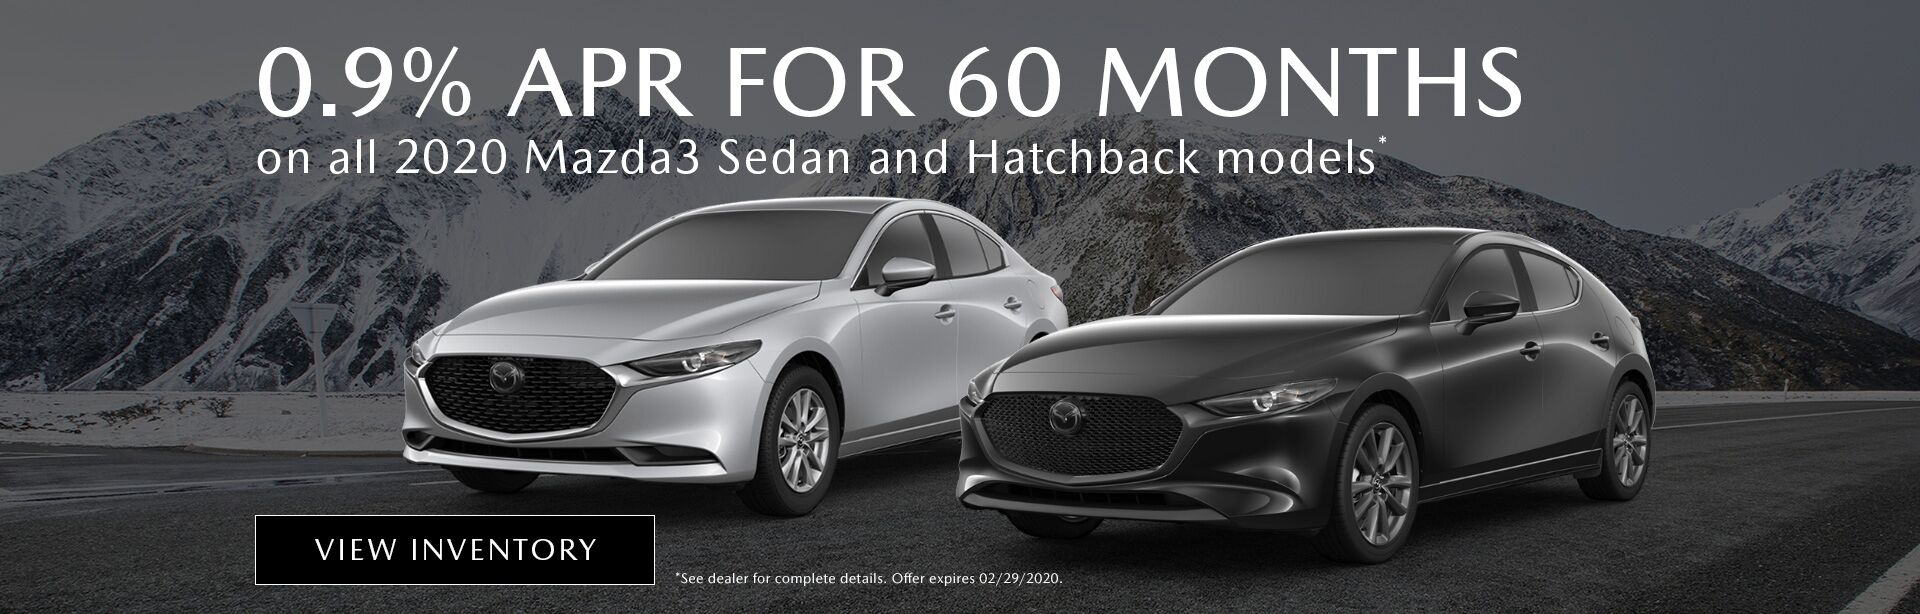 2020 Mazda3 Sedan & Hatchbacks